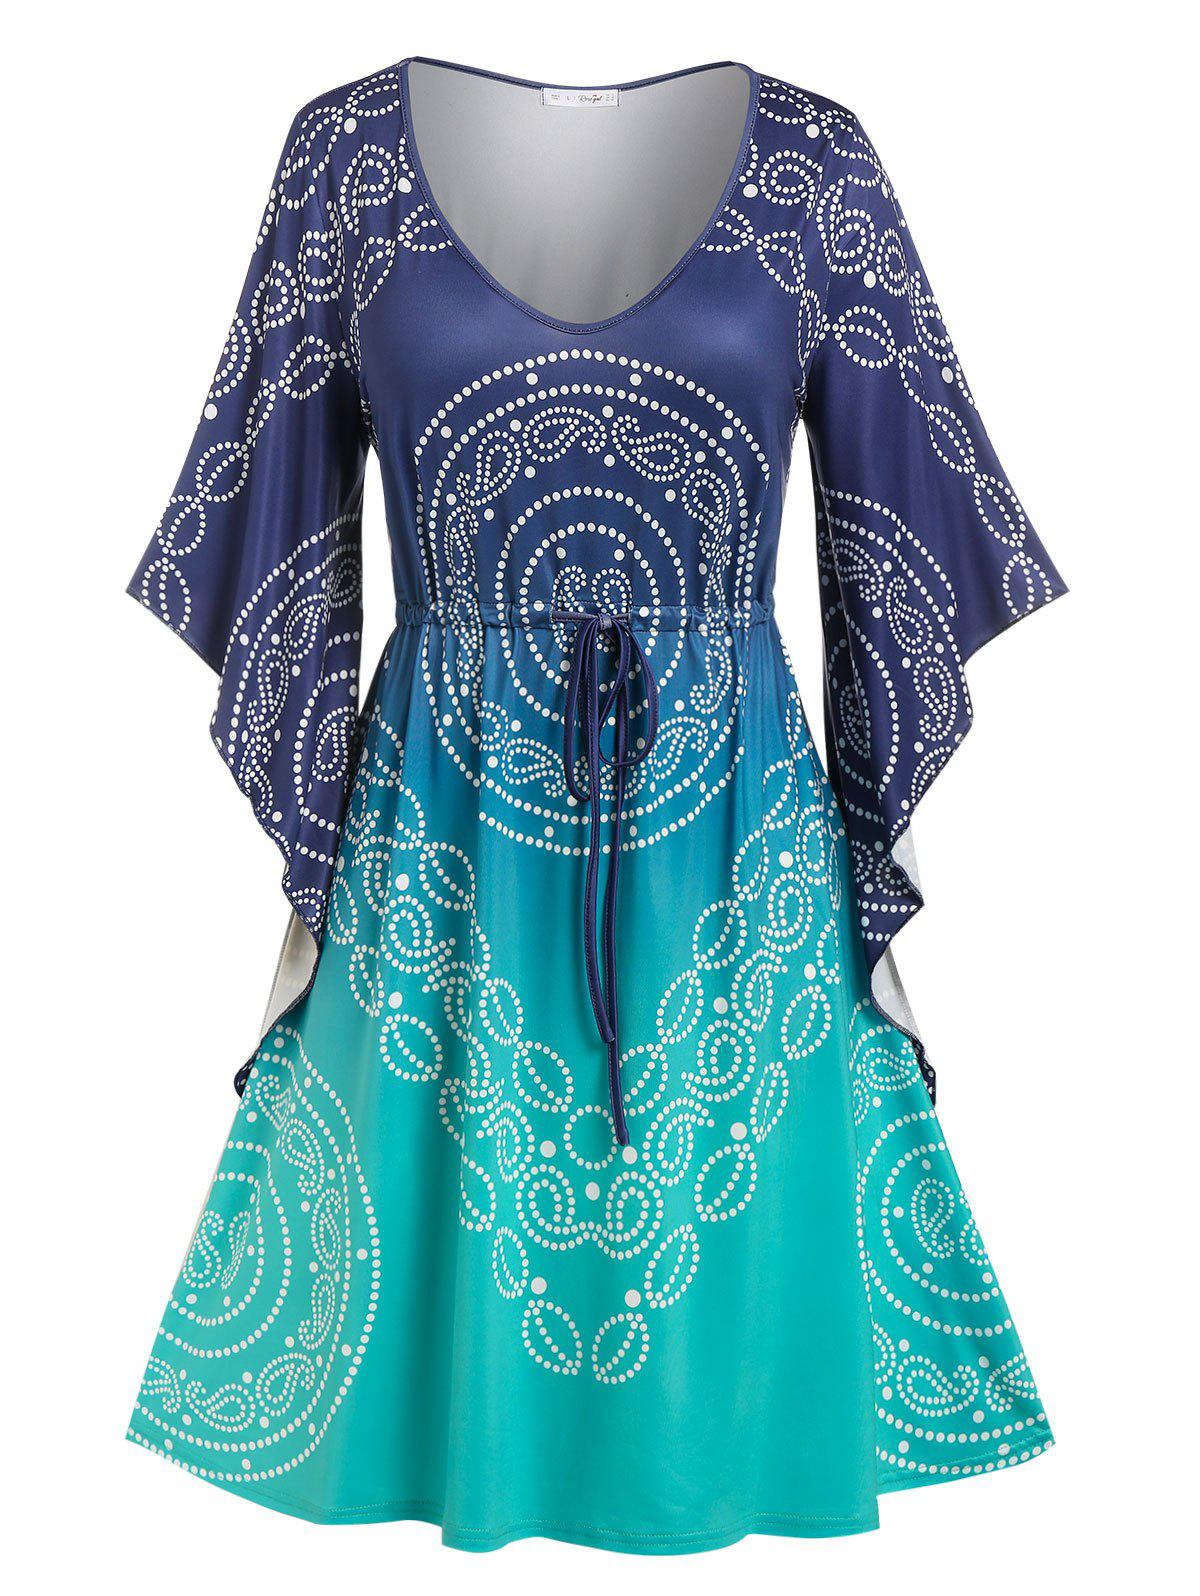 Plus Size Butterfly Sleeve Drawstring Knee Length Dress - multicolor 5X